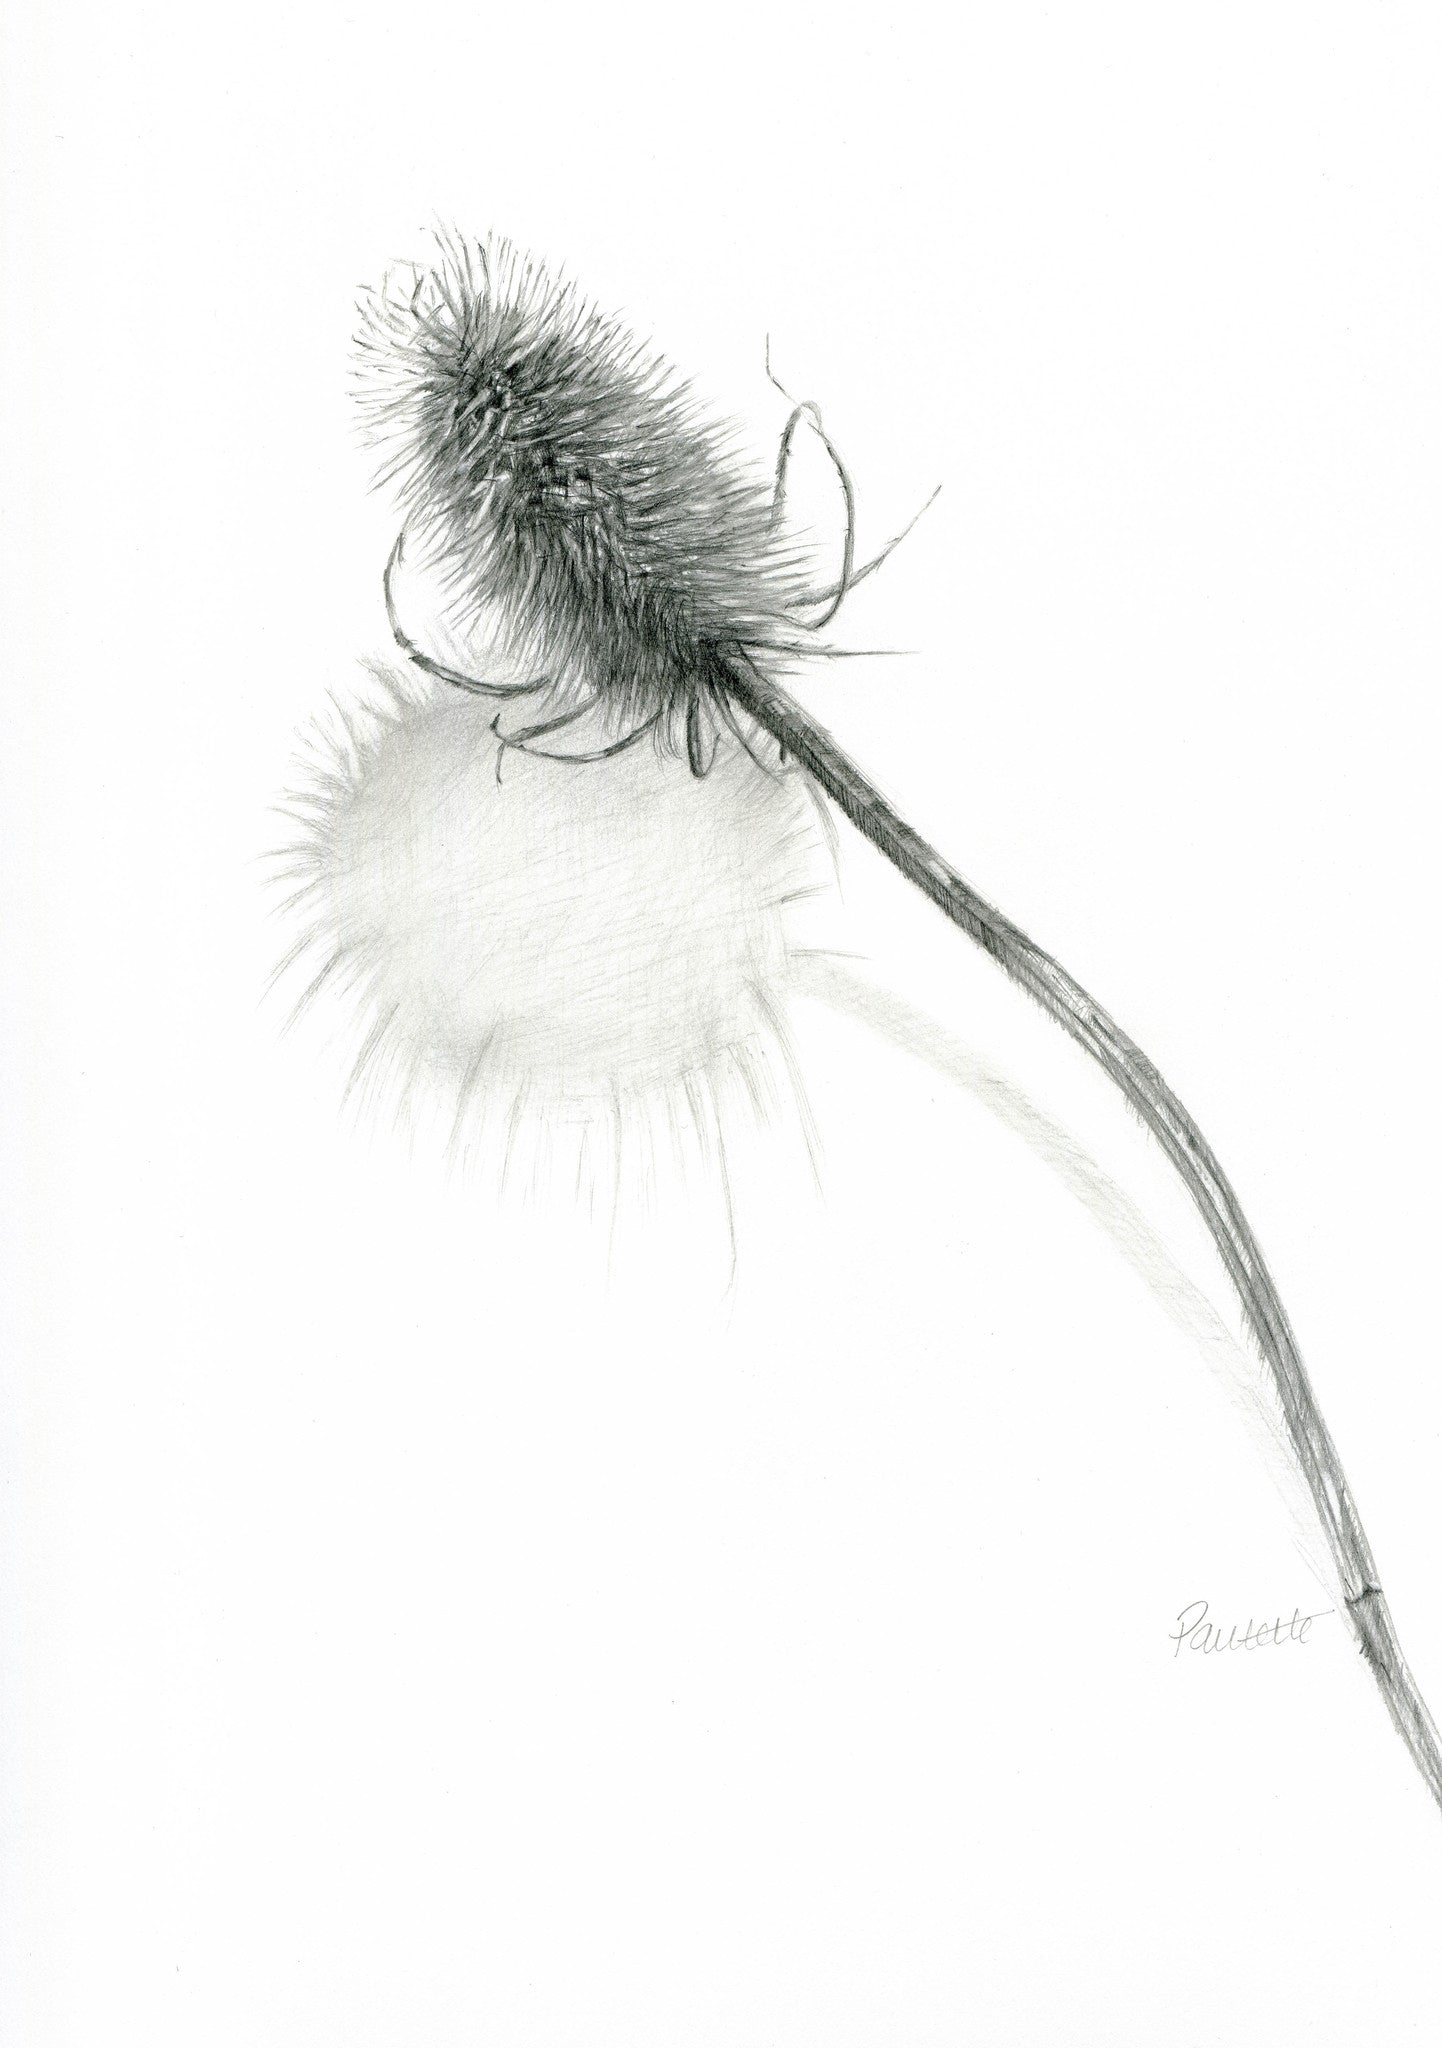 original graphite drawing of a teasel seedhead